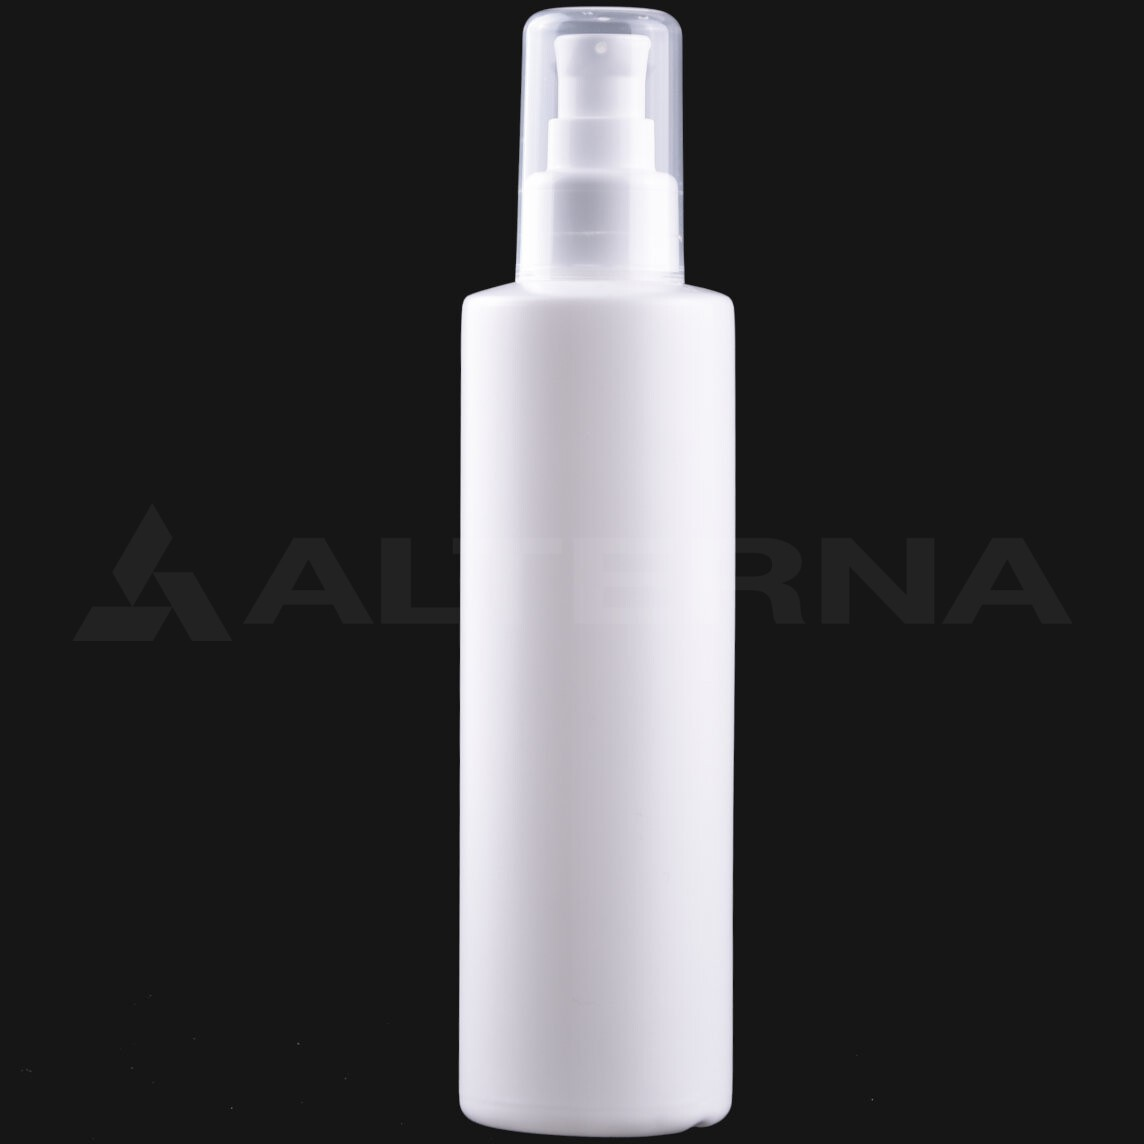 250 ml HDPE Bottle with 24 mm Lotion Pump